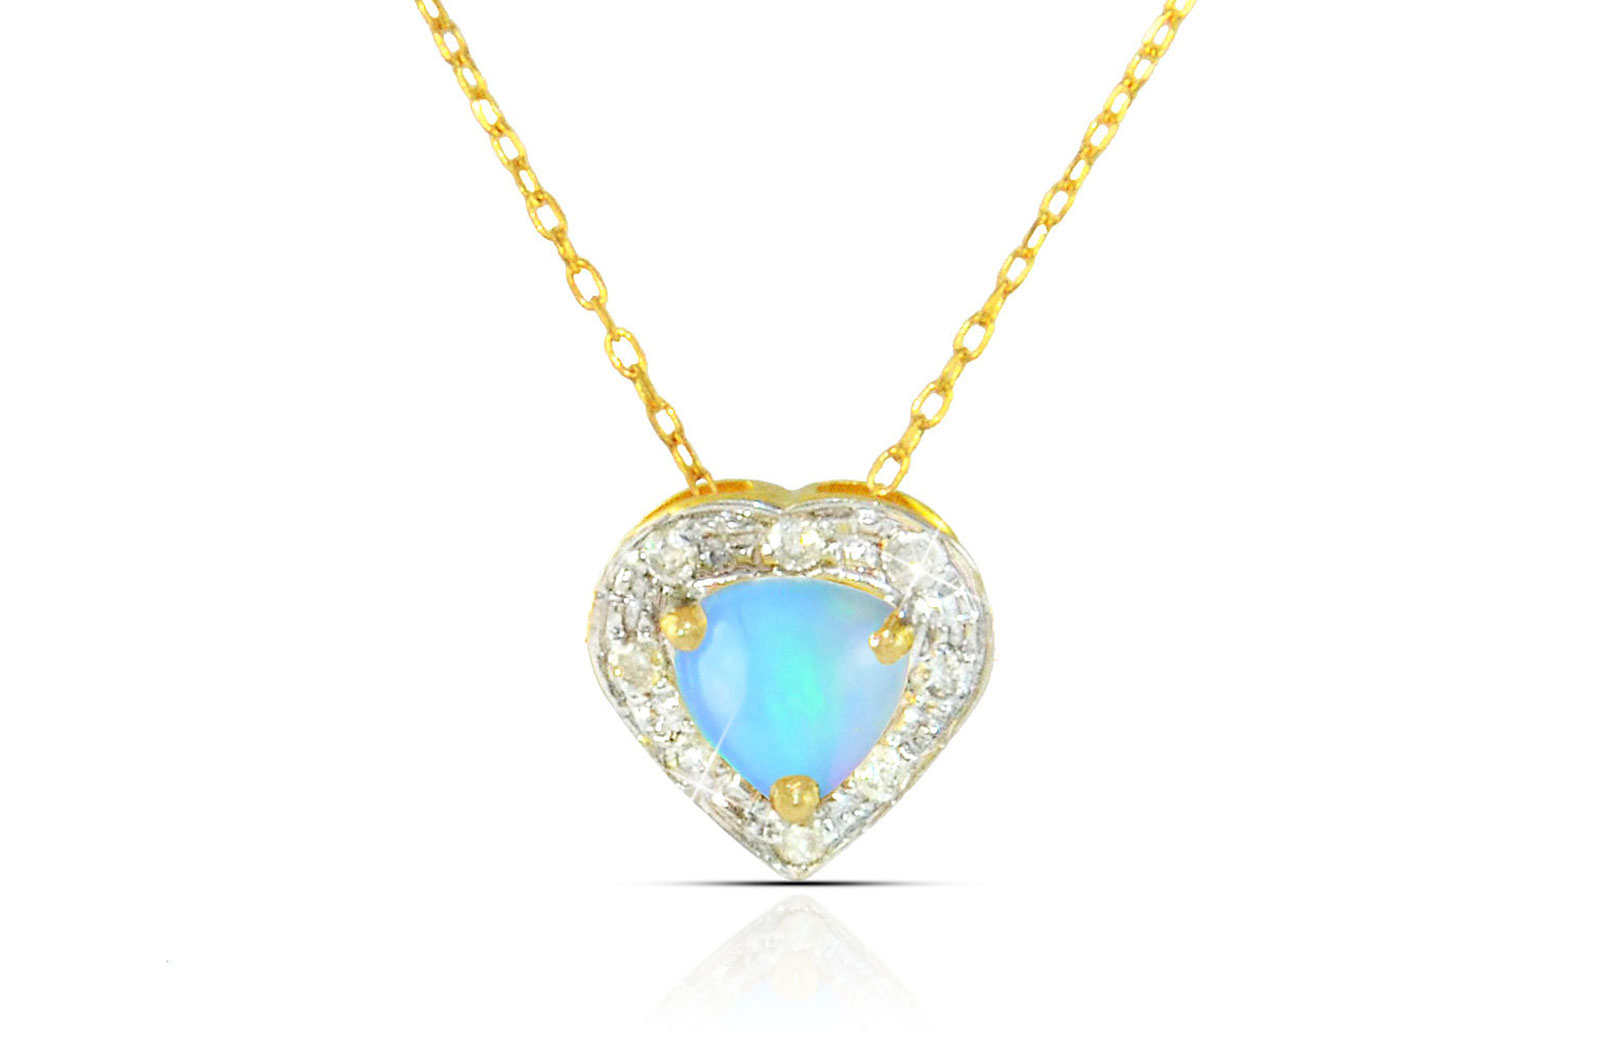 Vera Perla 18K Solid Gold and 0.08Cts Diamonds and 5mm Genuine Ethiopian Opal Heart Necklace